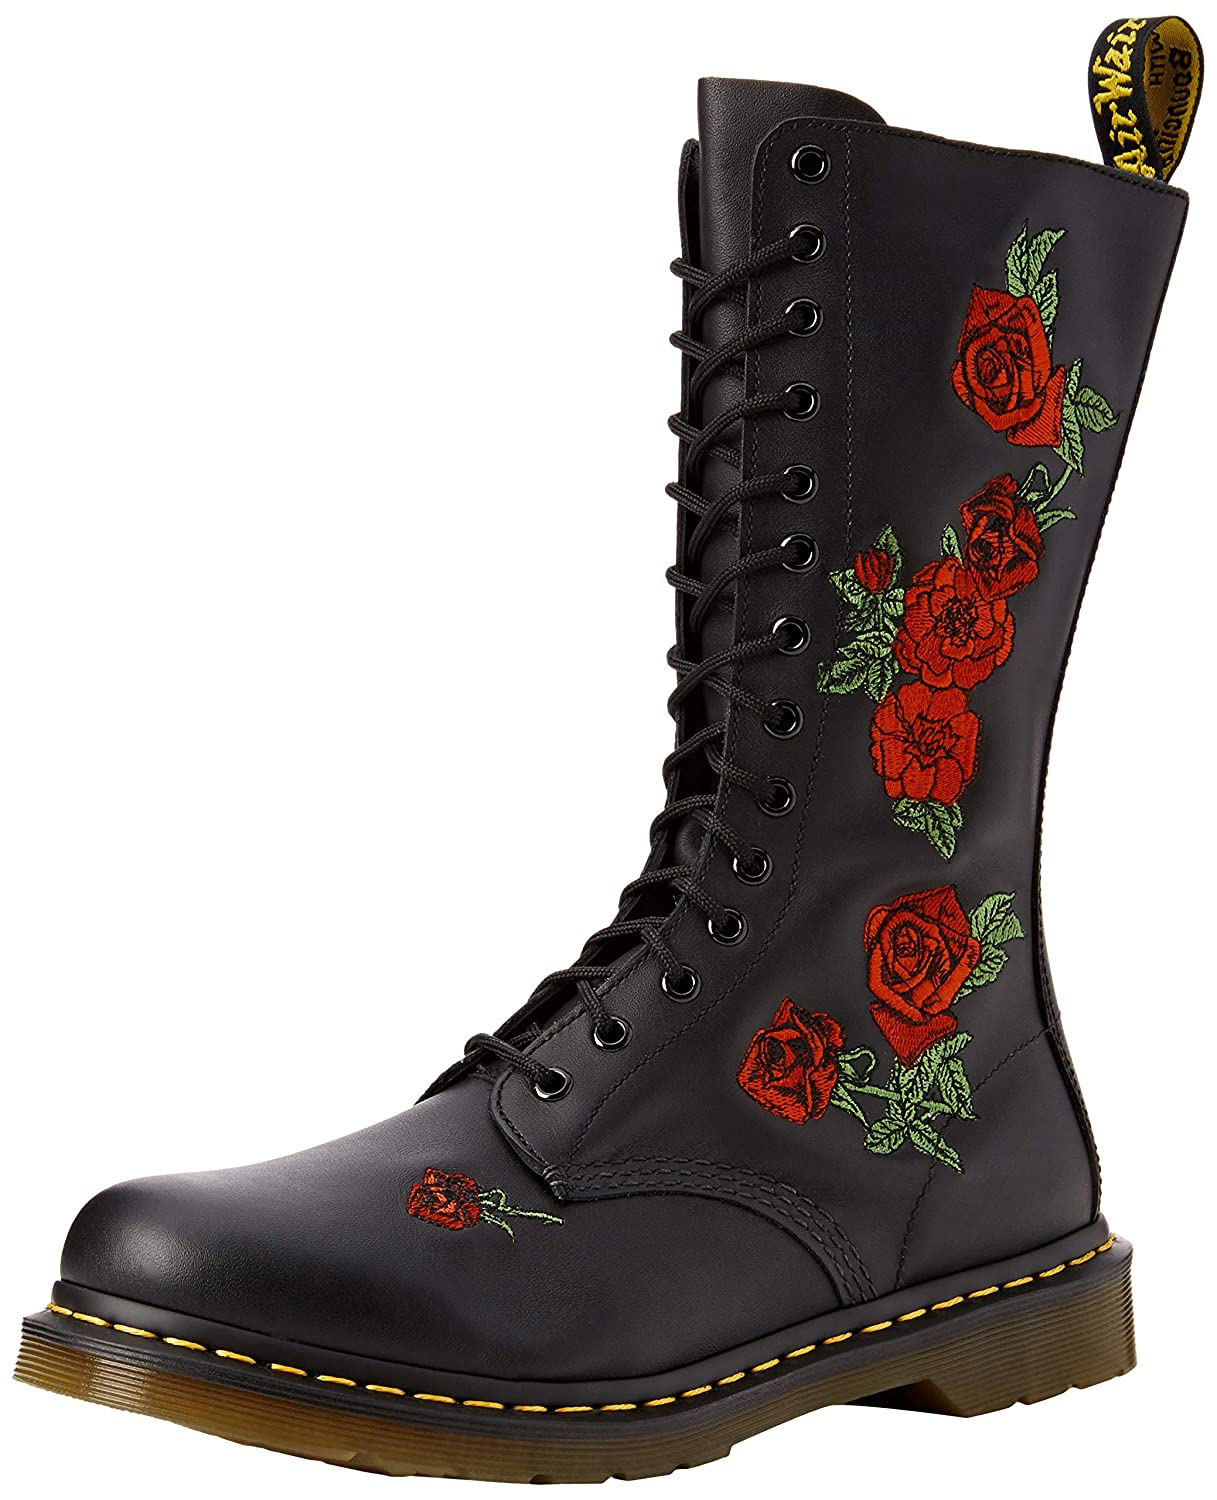 doc martens with red roses